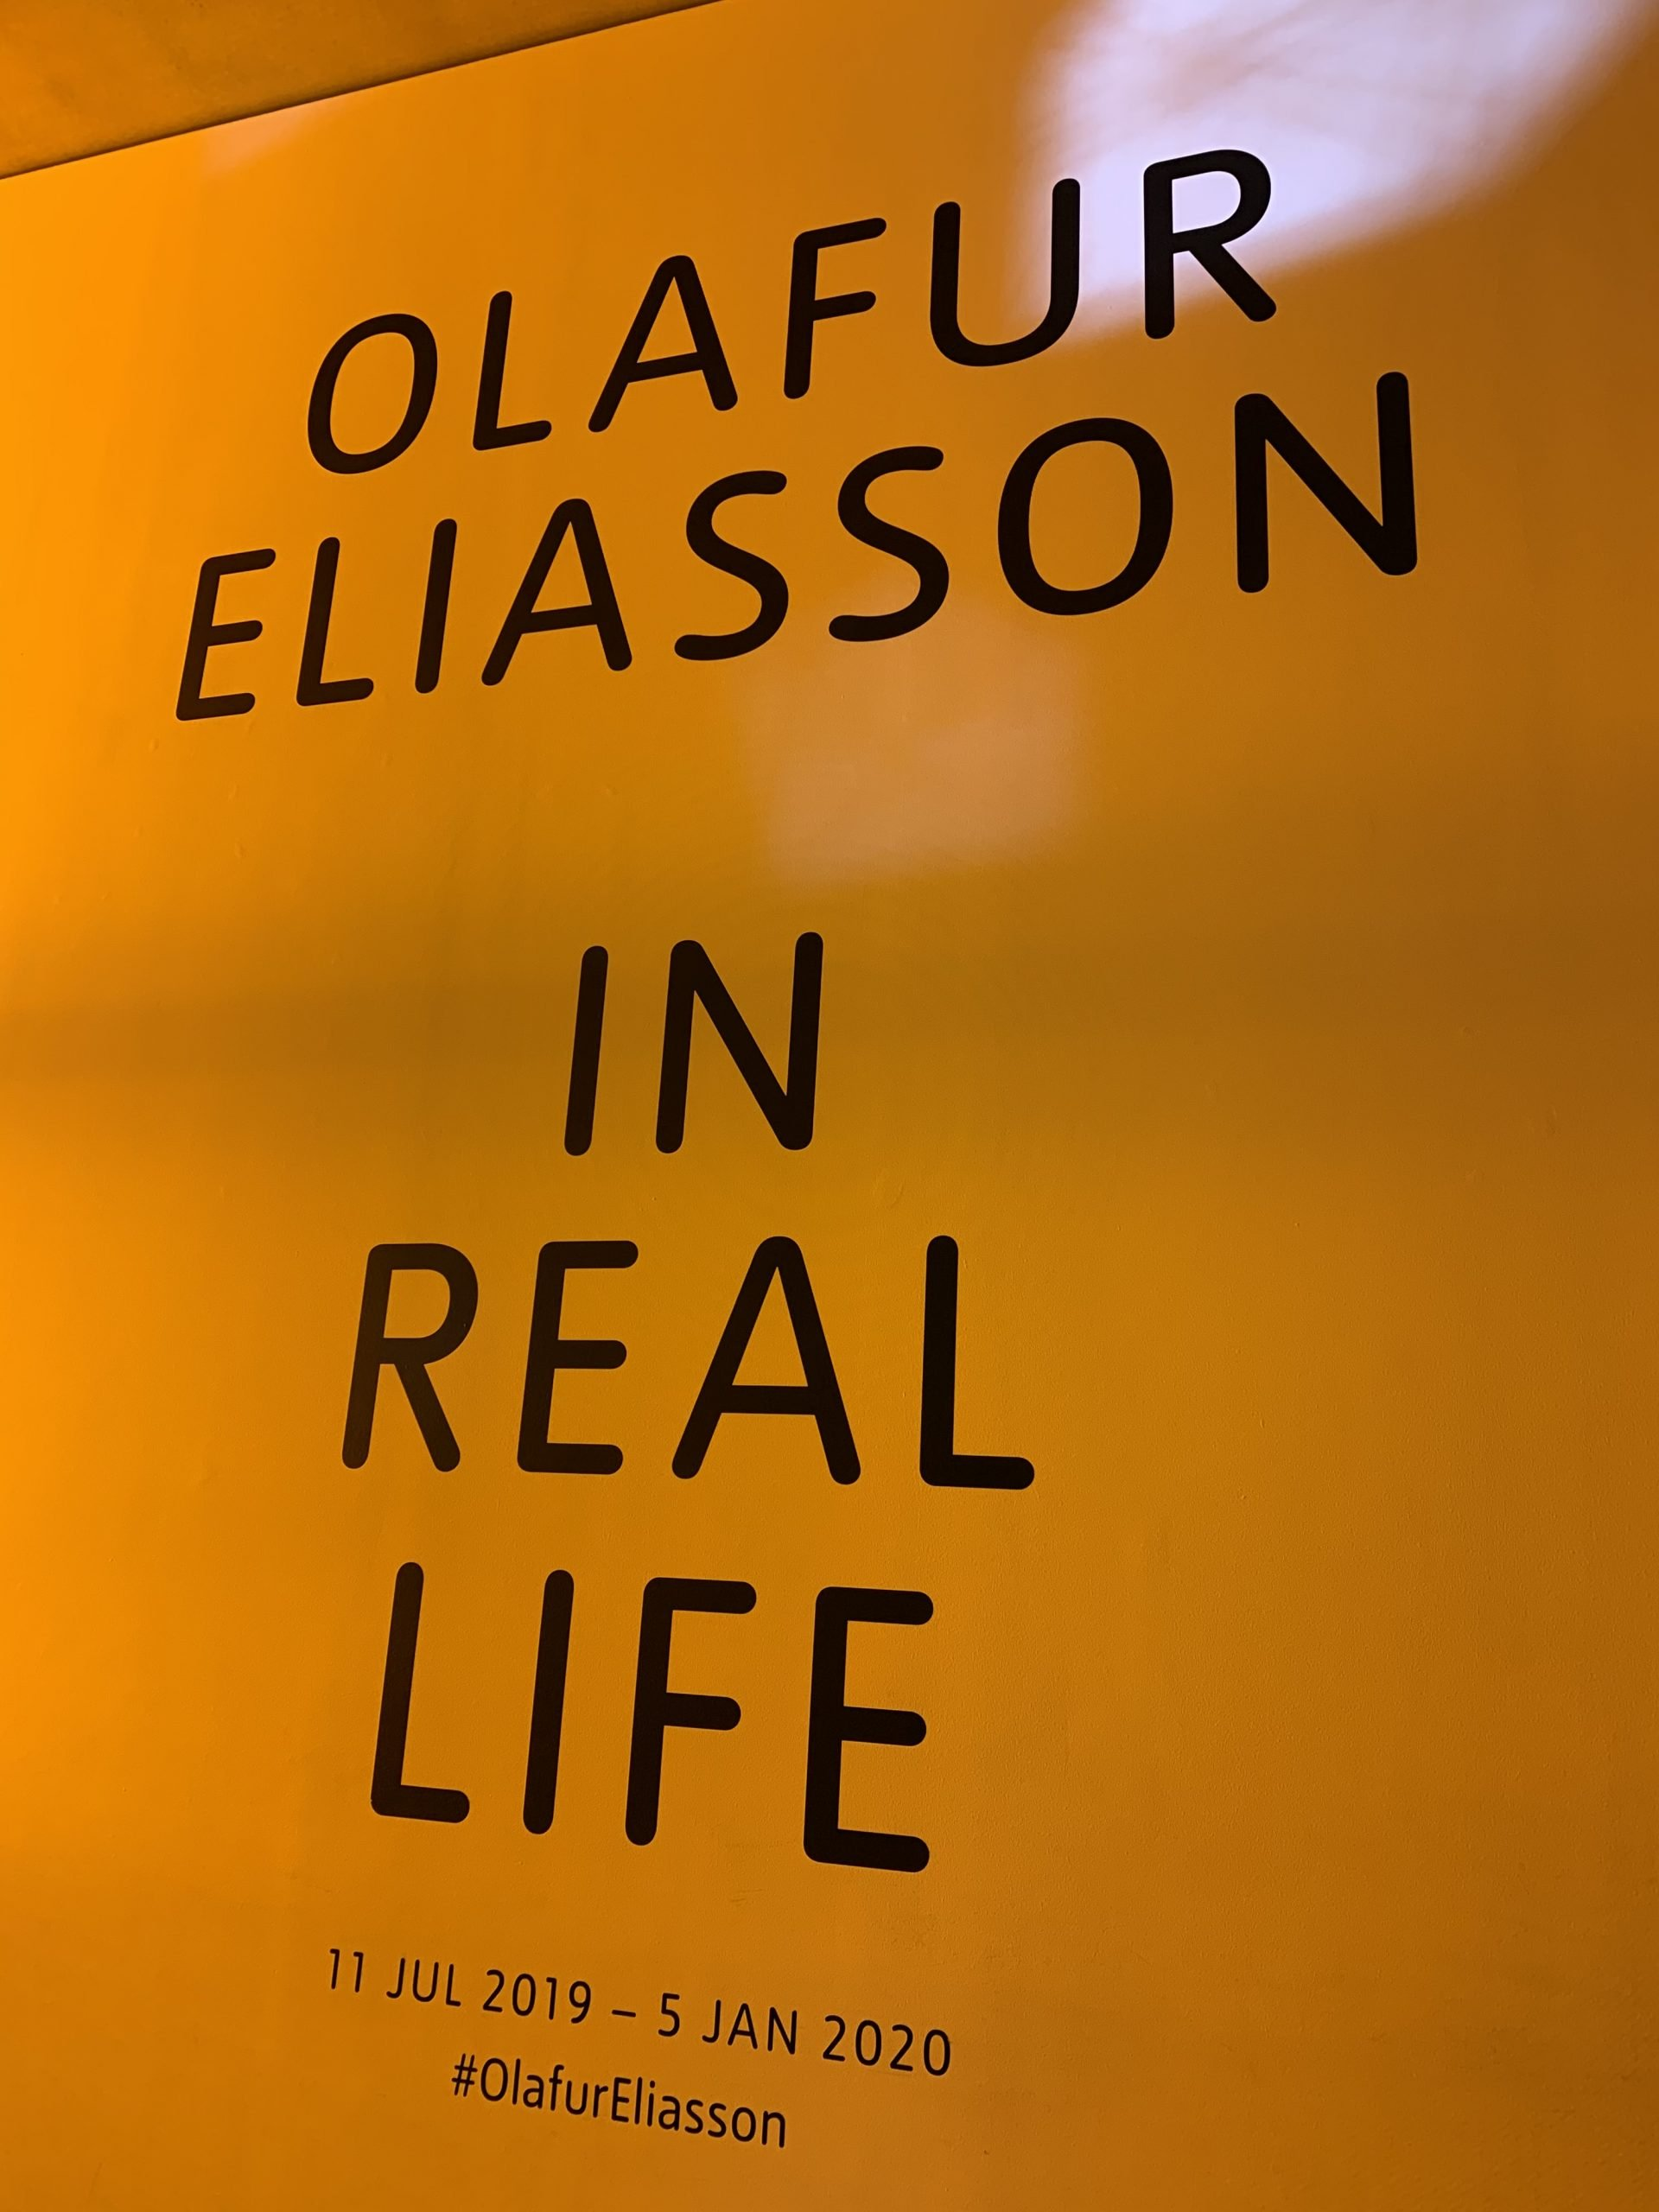 EgoSumArt visits Olafur Eliasson: In real life at the Tate Modern, London